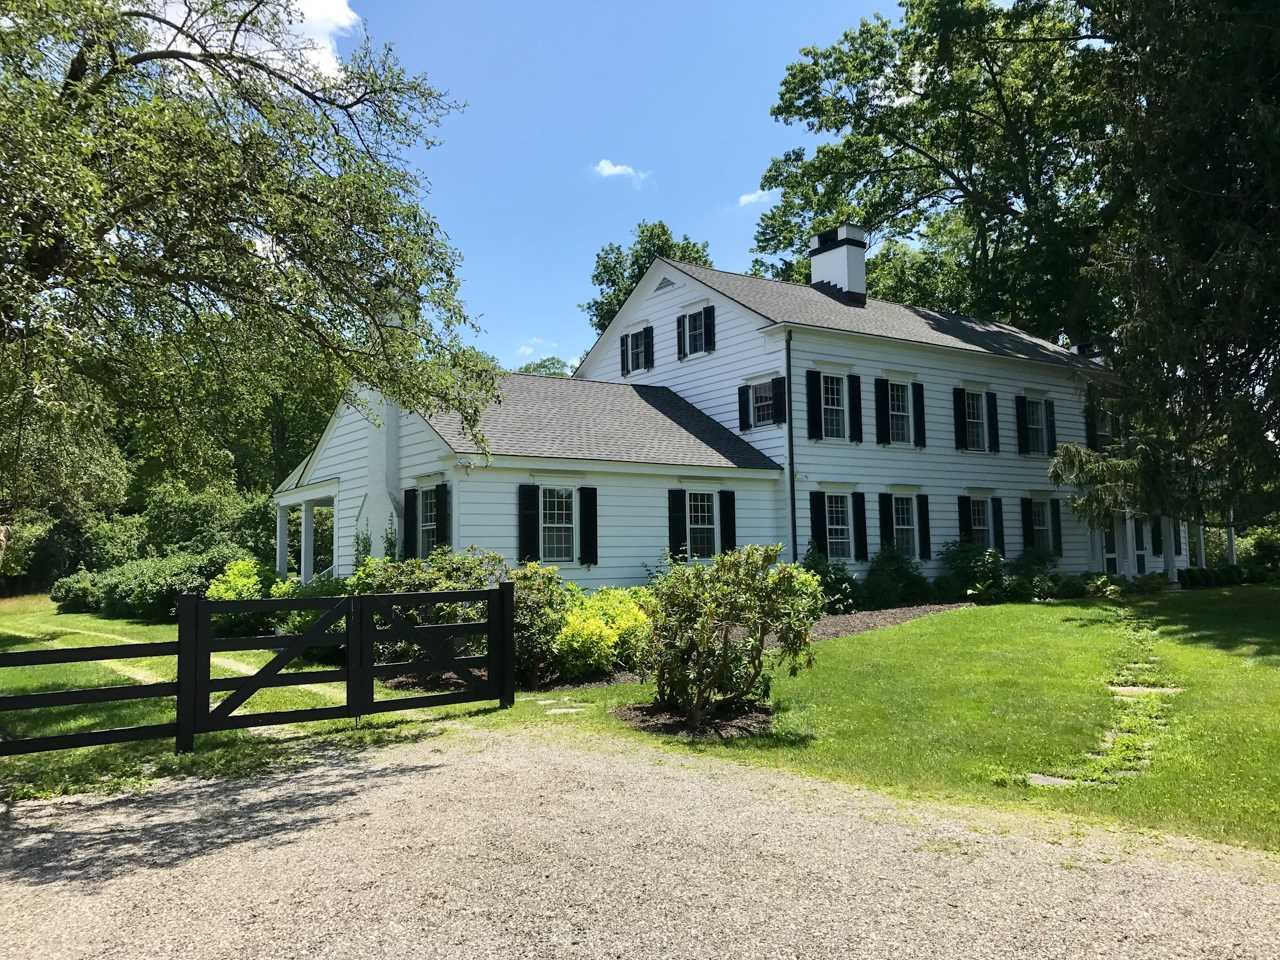 Single Family Home for Sale at 600 CHESTNUT RIDGE ROAD 600 CHESTNUT RIDGE ROAD Dover Plains, New York 12522 United States